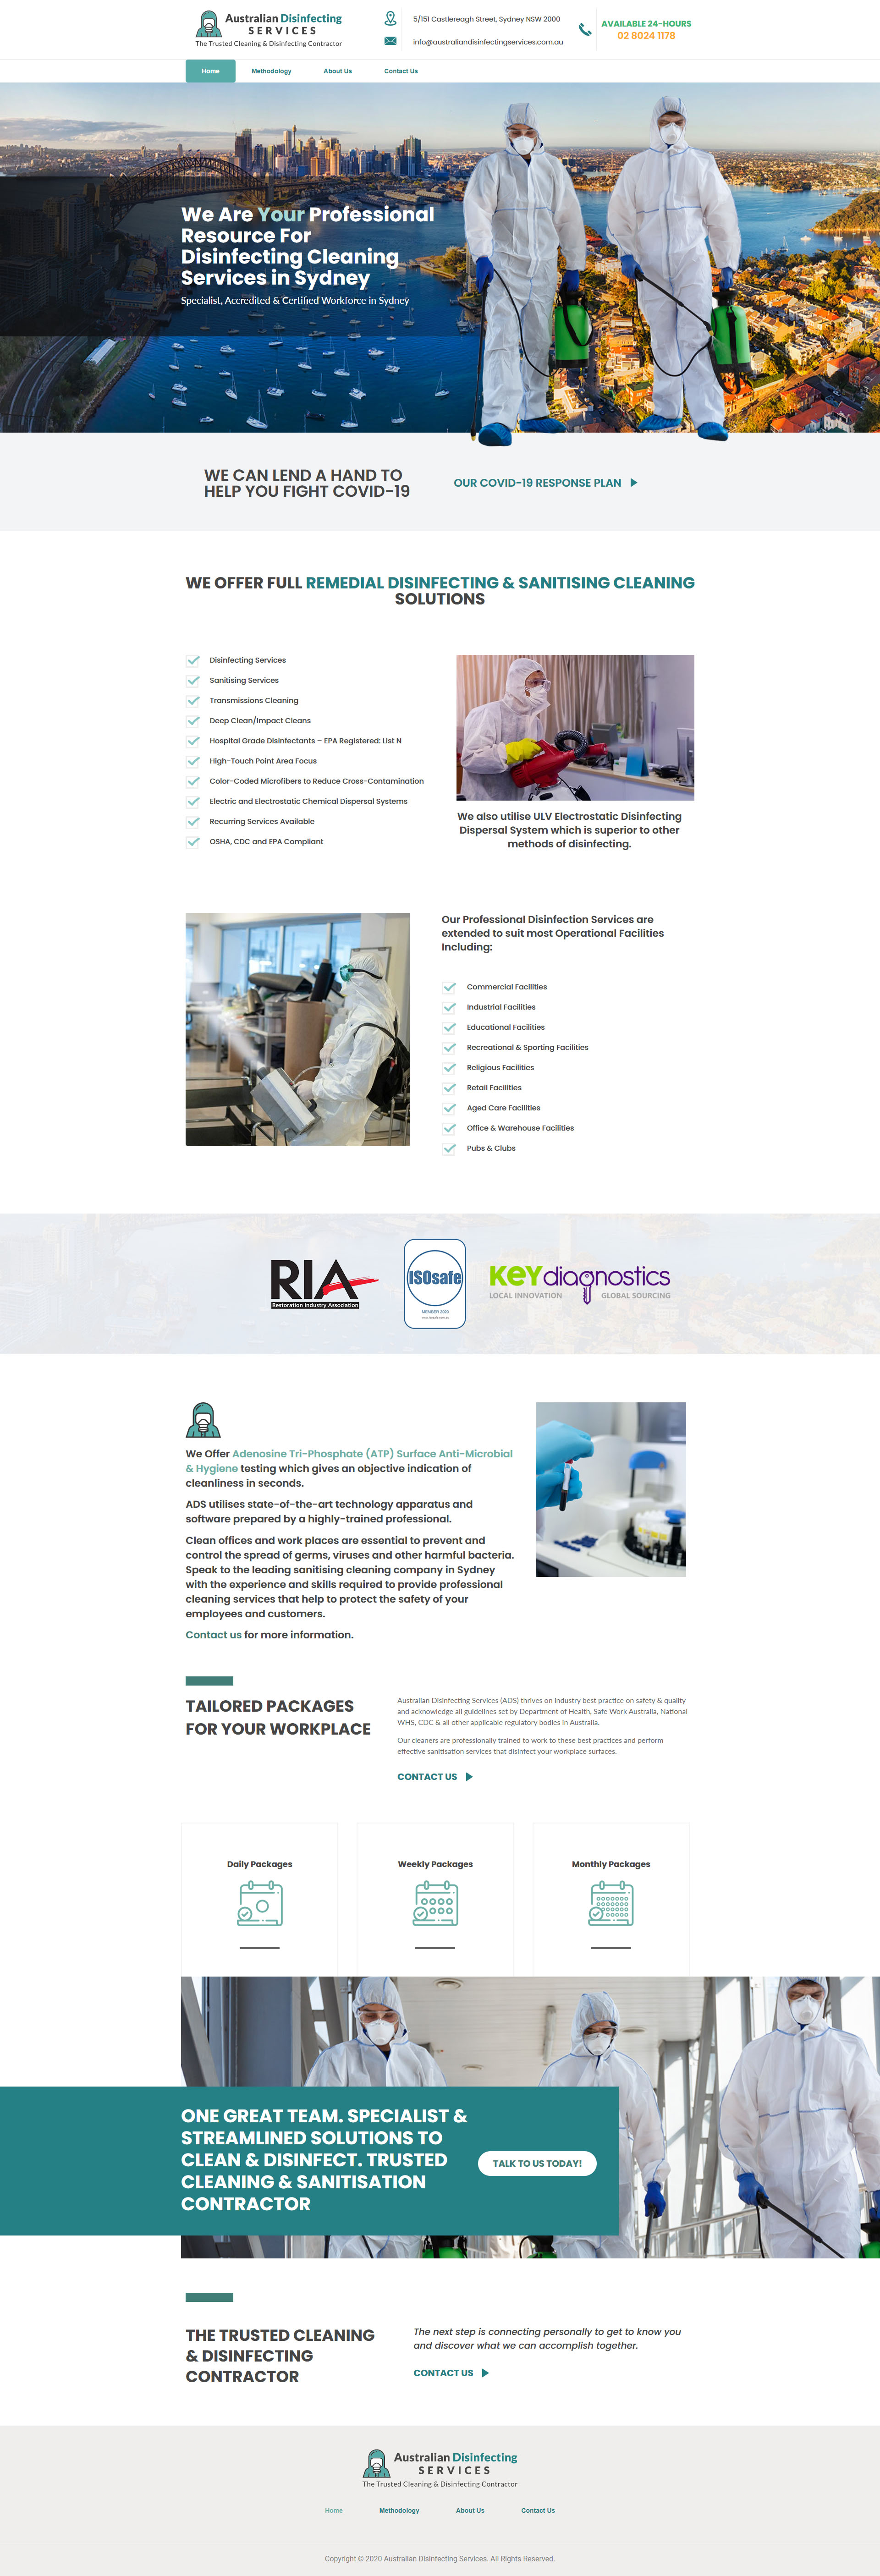 Disinfection_Cleaning_Sanitising_Services_Australian_Disinfecting_Services.jpg